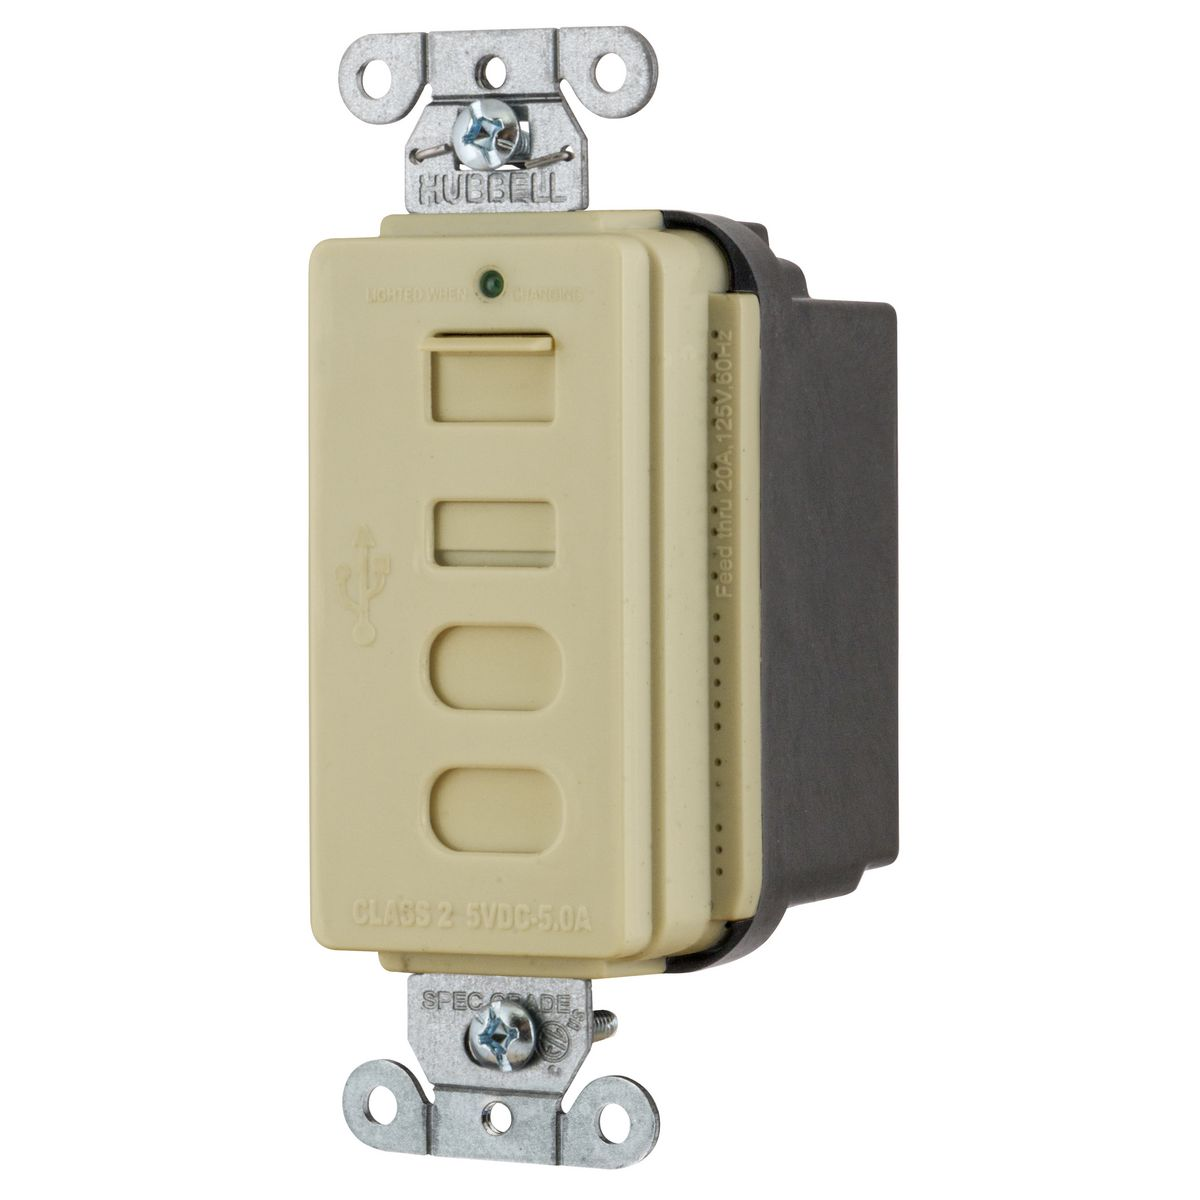 Hubbell USB4ACI Receptacle and USB Charger